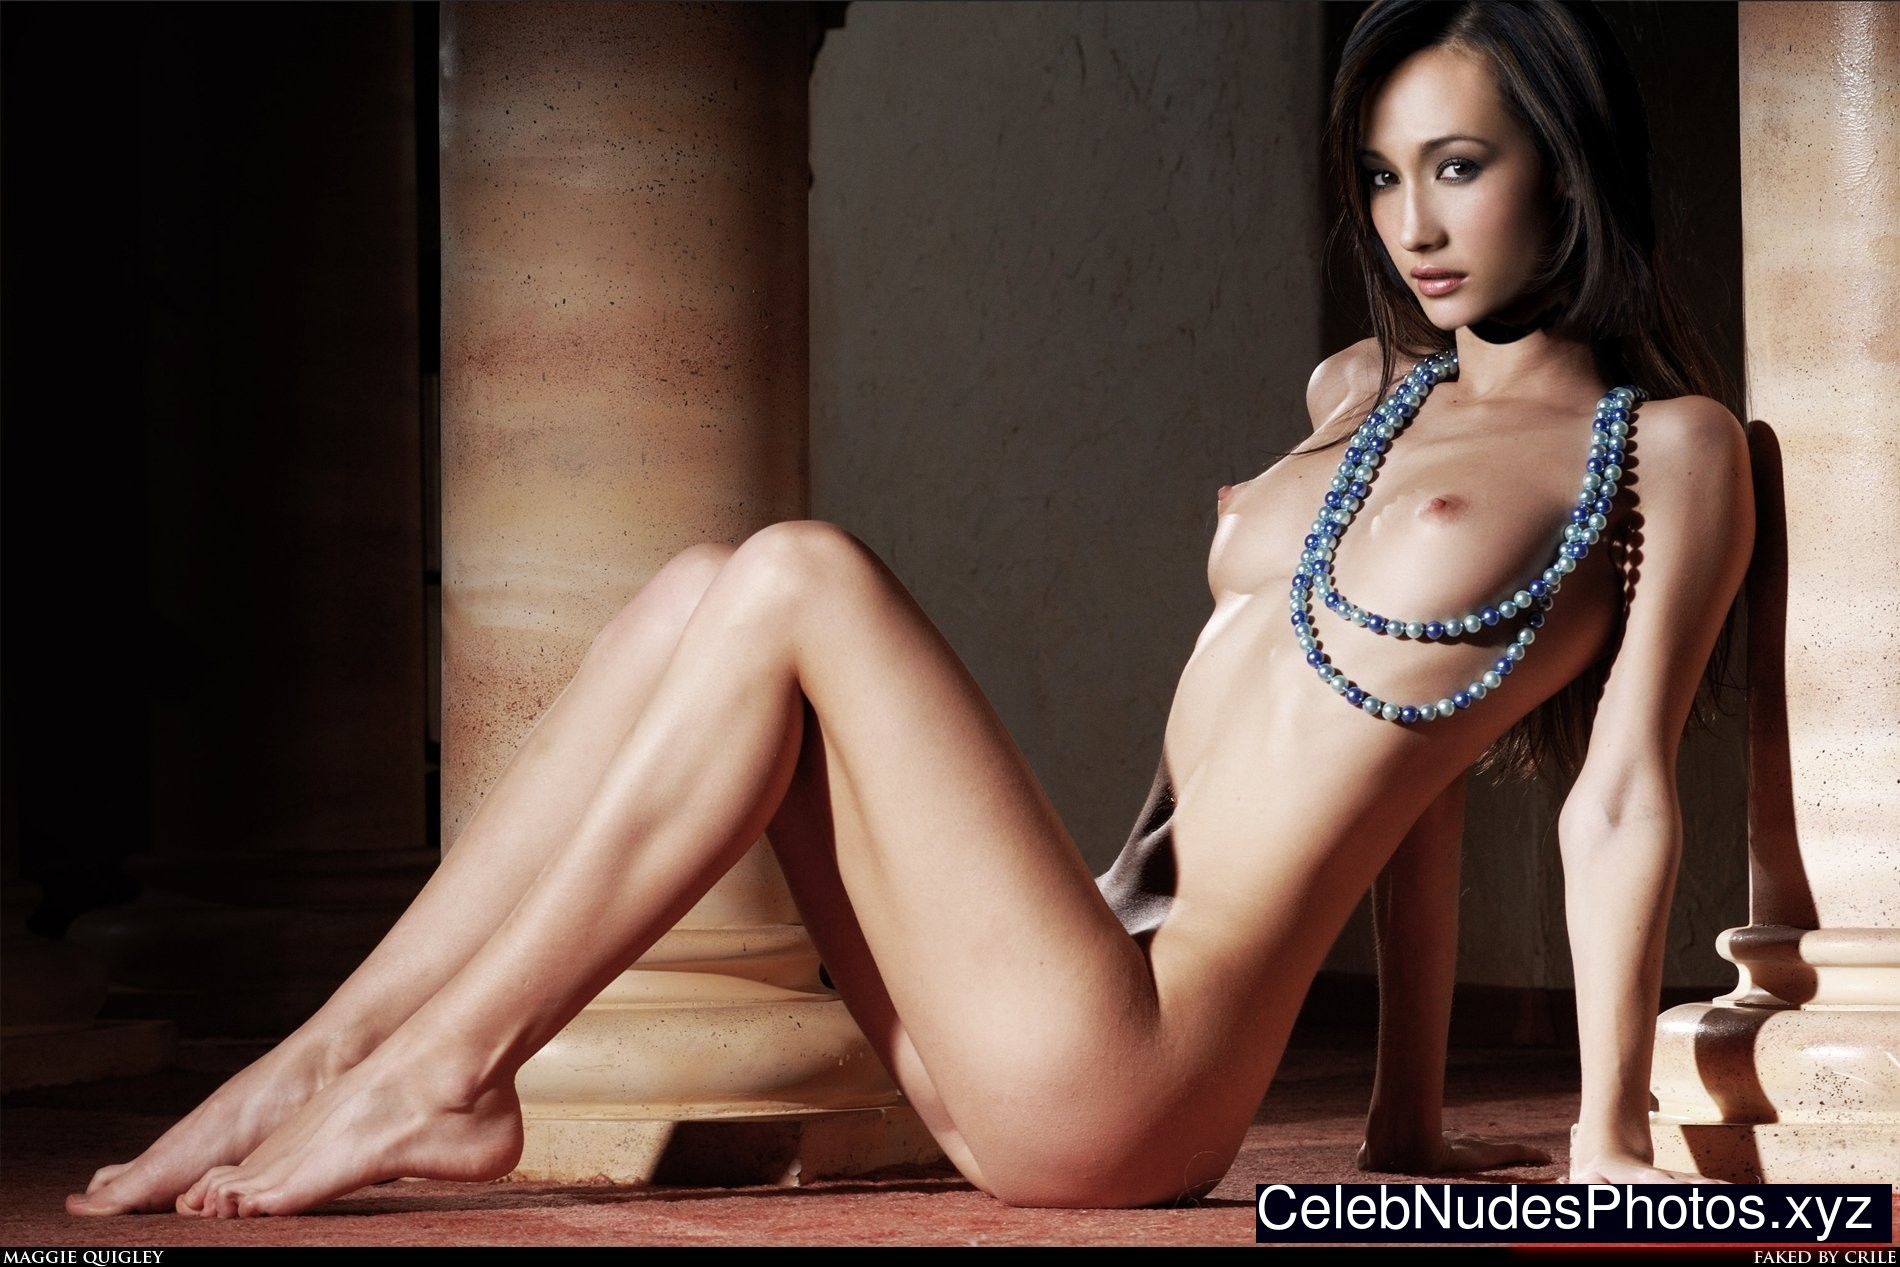 Not absolutely Maggie q girl nude necessary